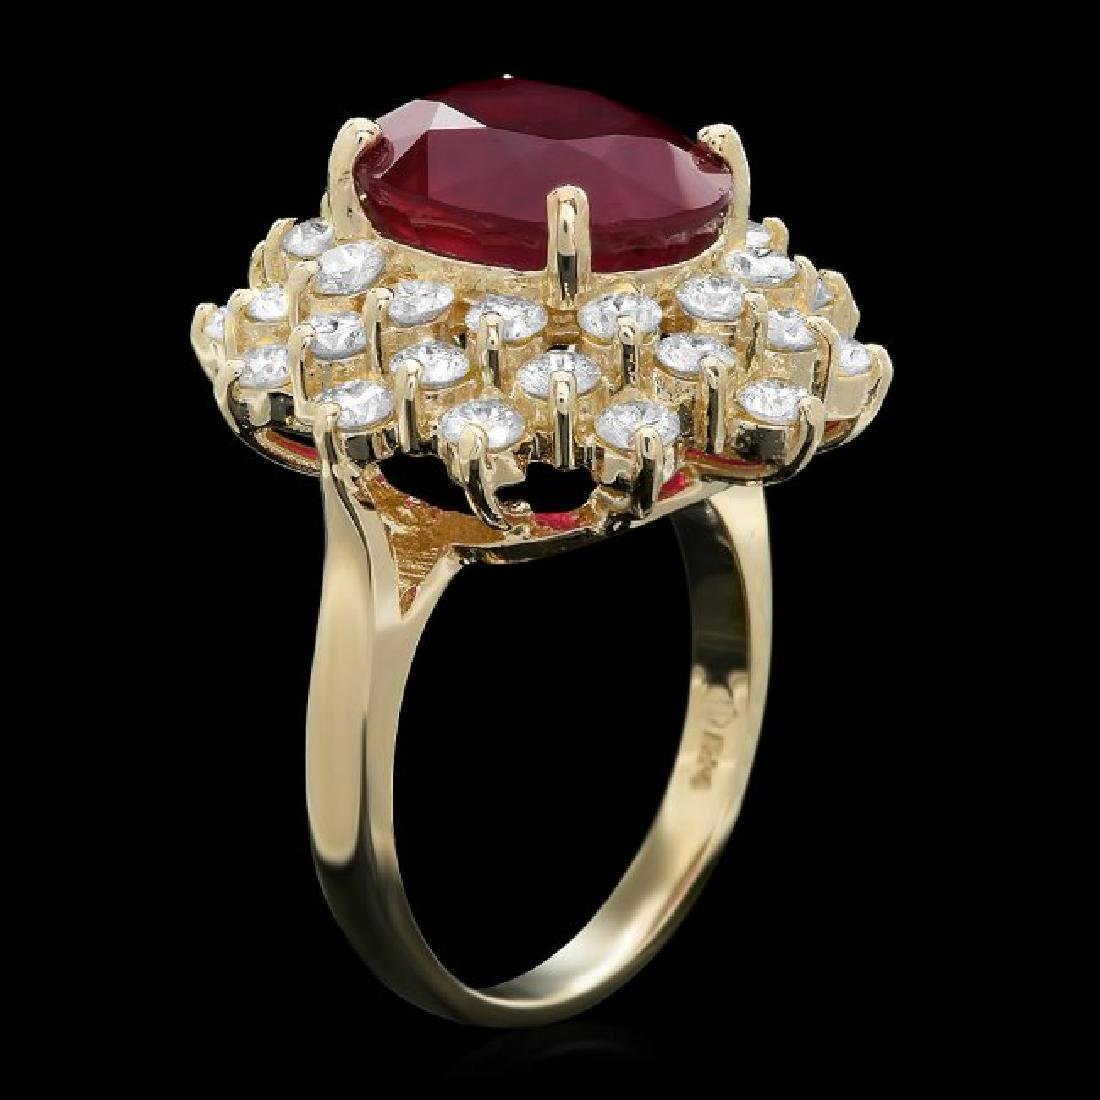 14k Yellow Gold 7.50ct Ruby 2.30ct Diamond Ring - 2